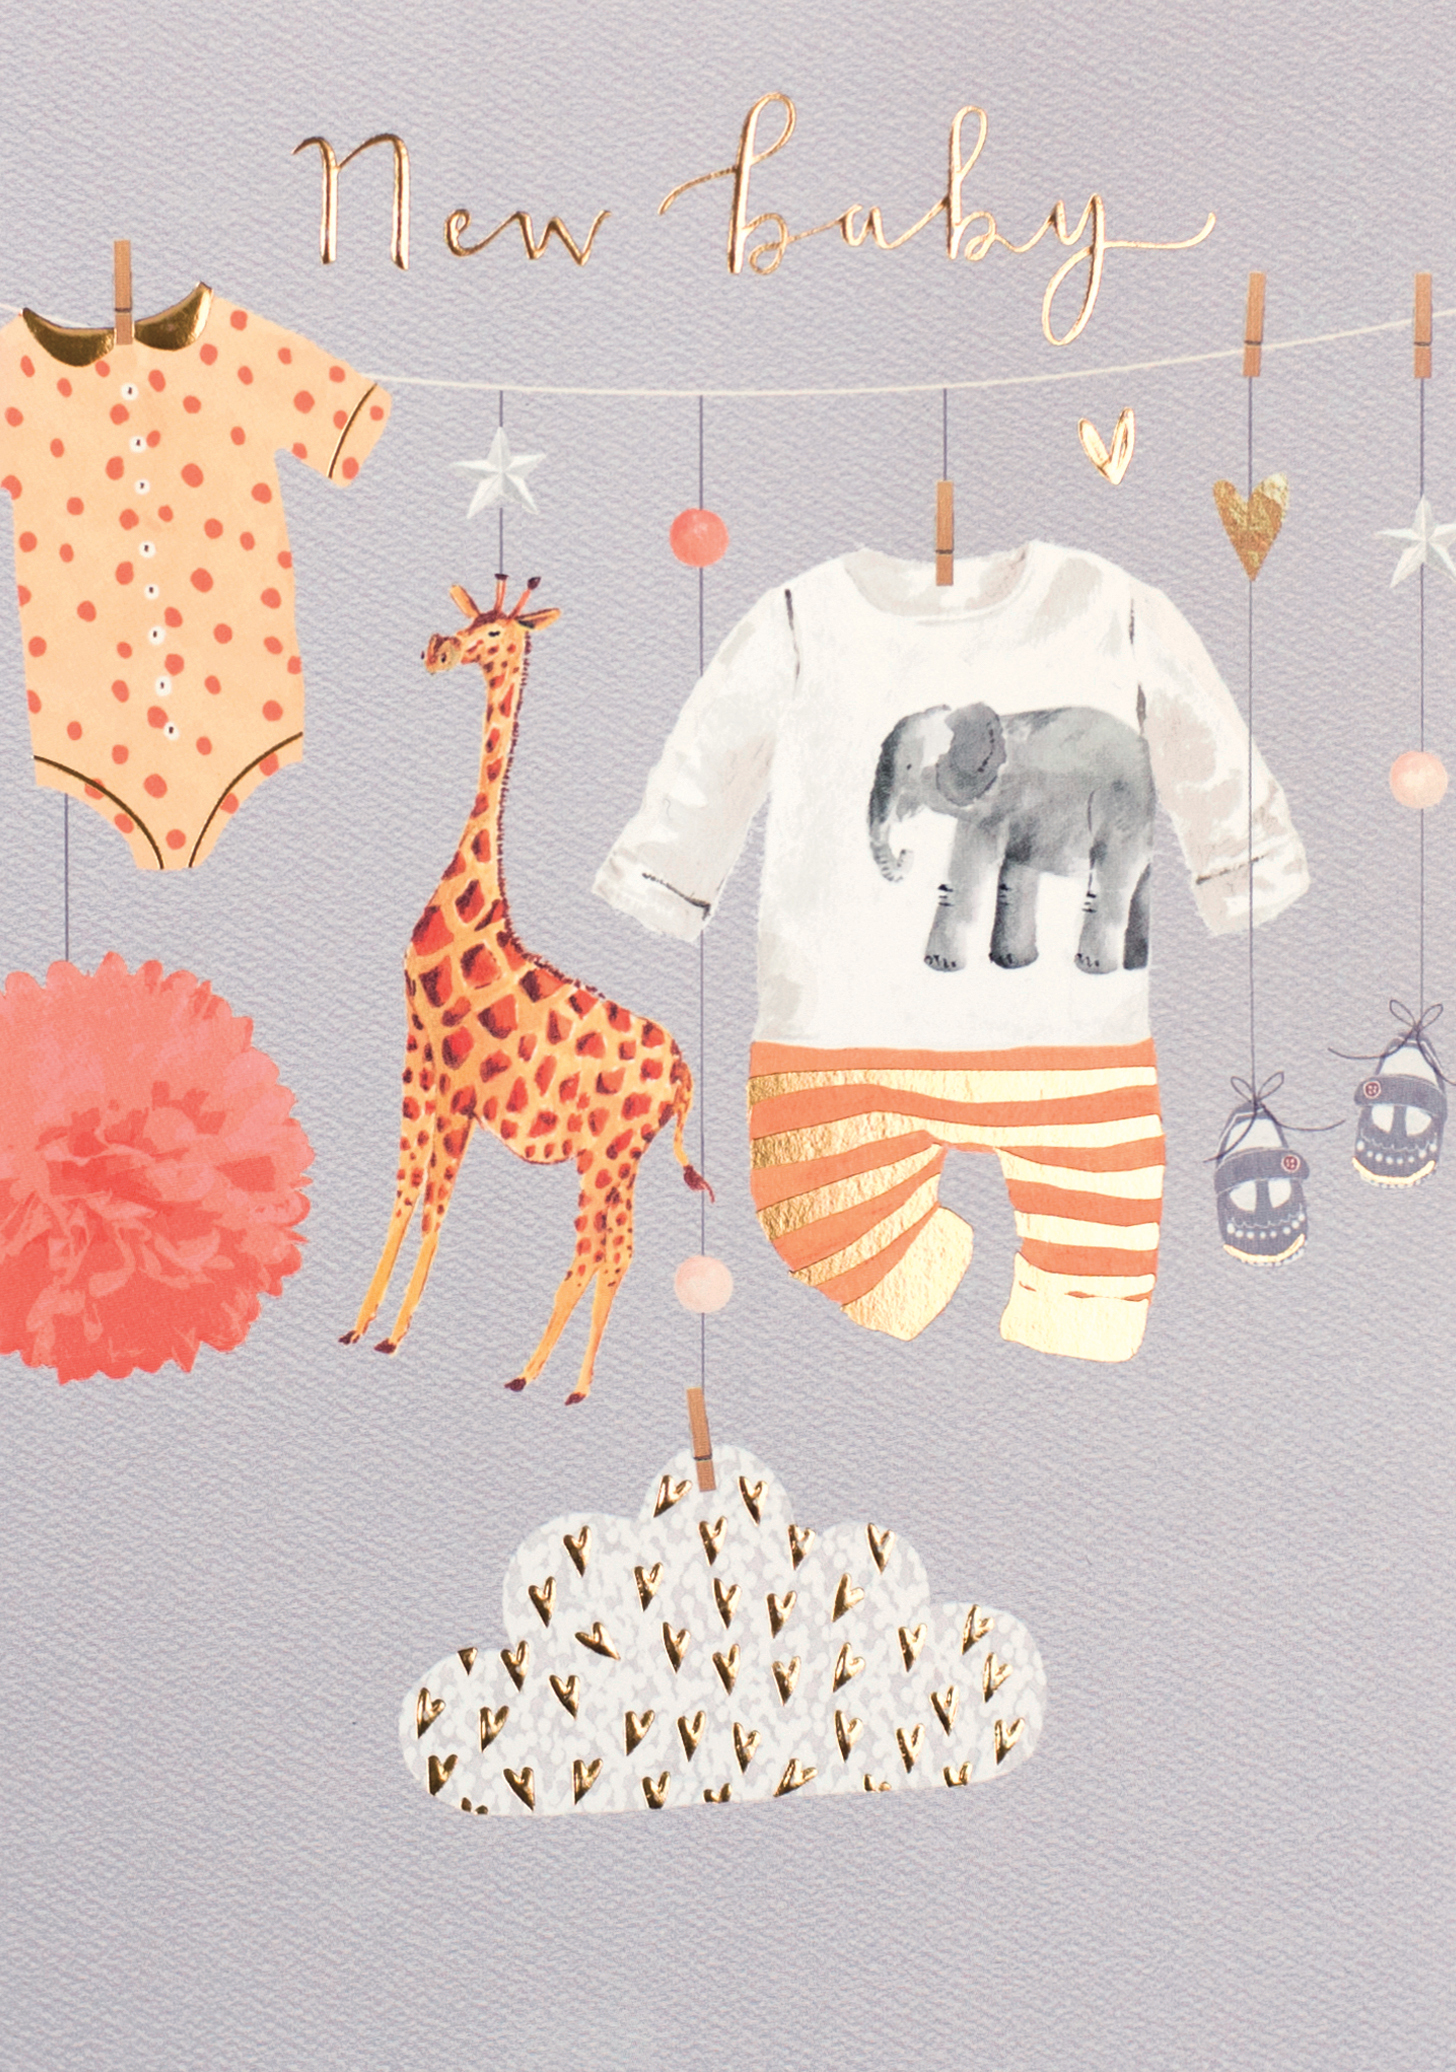 Cosy Cute New Baby Card